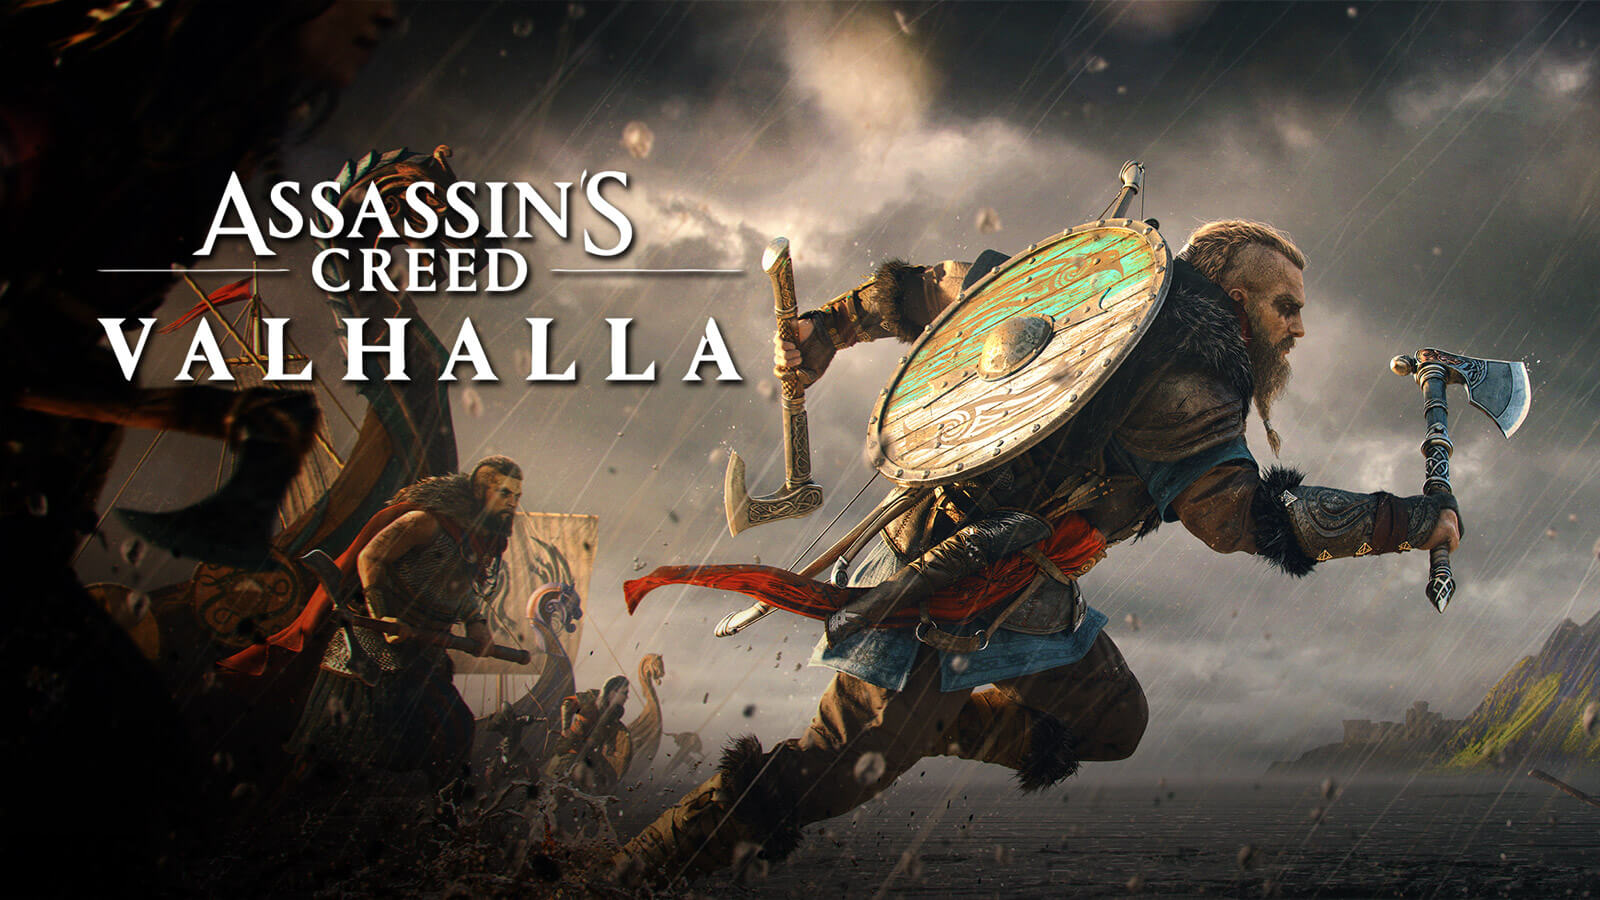 Assassin S Creed Valhalla Gameplay Footage Leaked Gameslaught